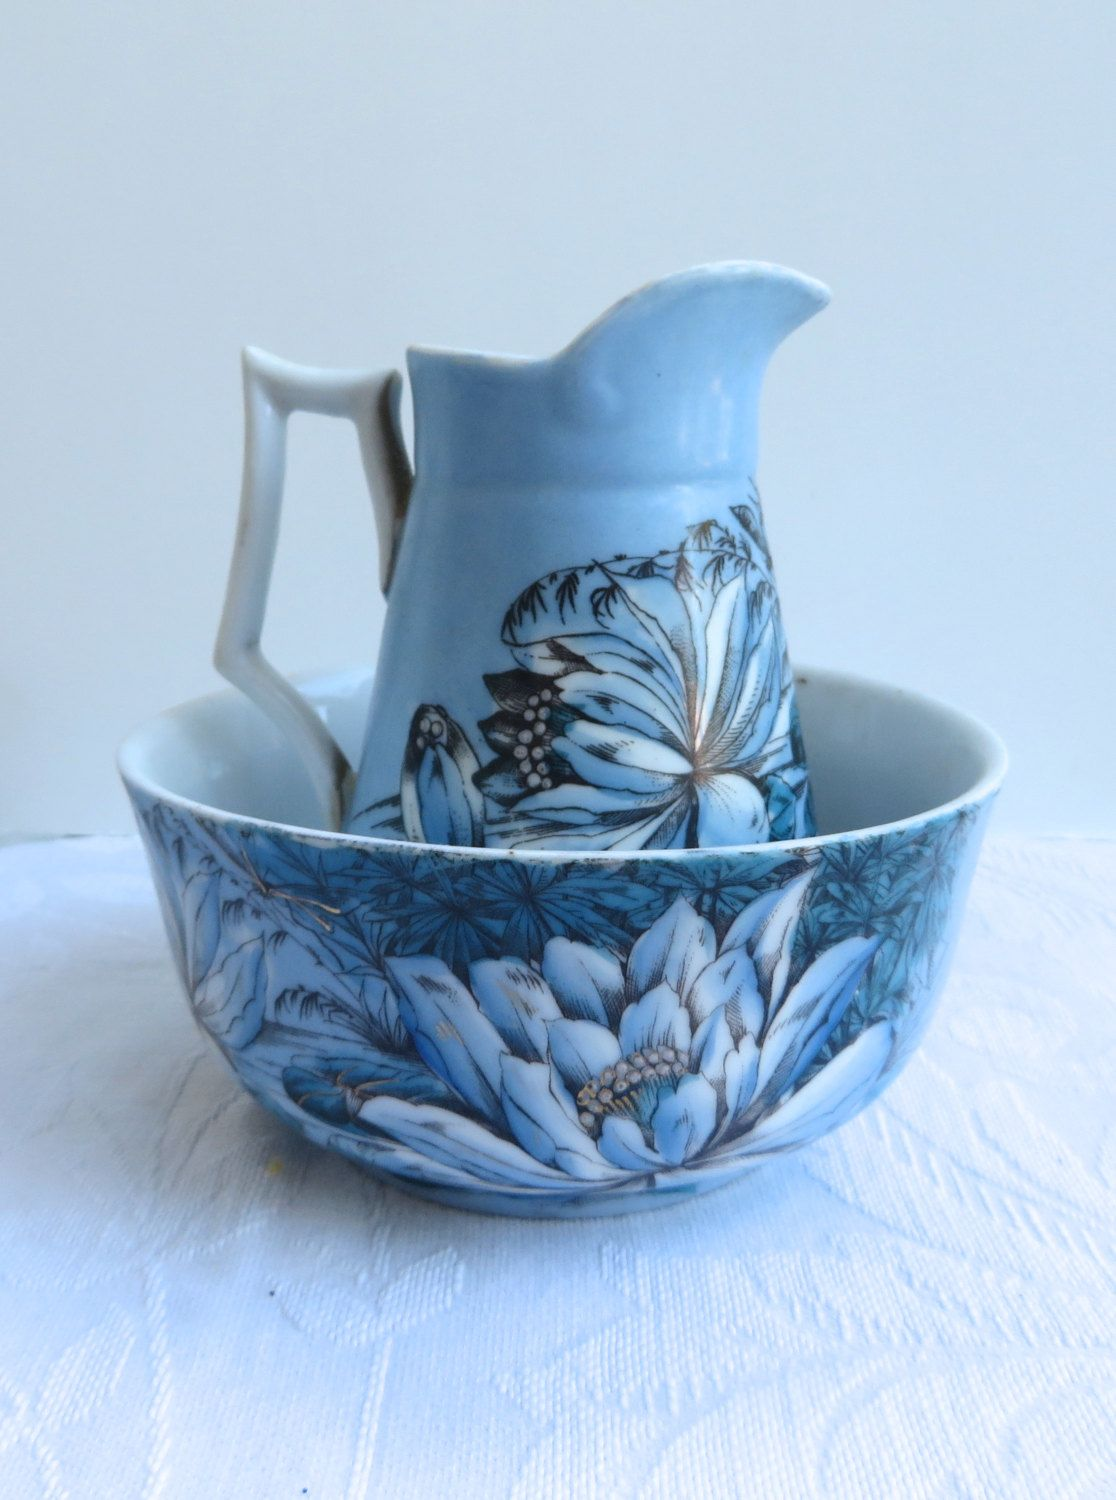 Victorian Era Water Pitcher And Bowl Set Blue Background With Magnolia Flowers Bamboo Plants Lilies And Even A Drago Bowl Antique Pitcher Porcelain Pitcher